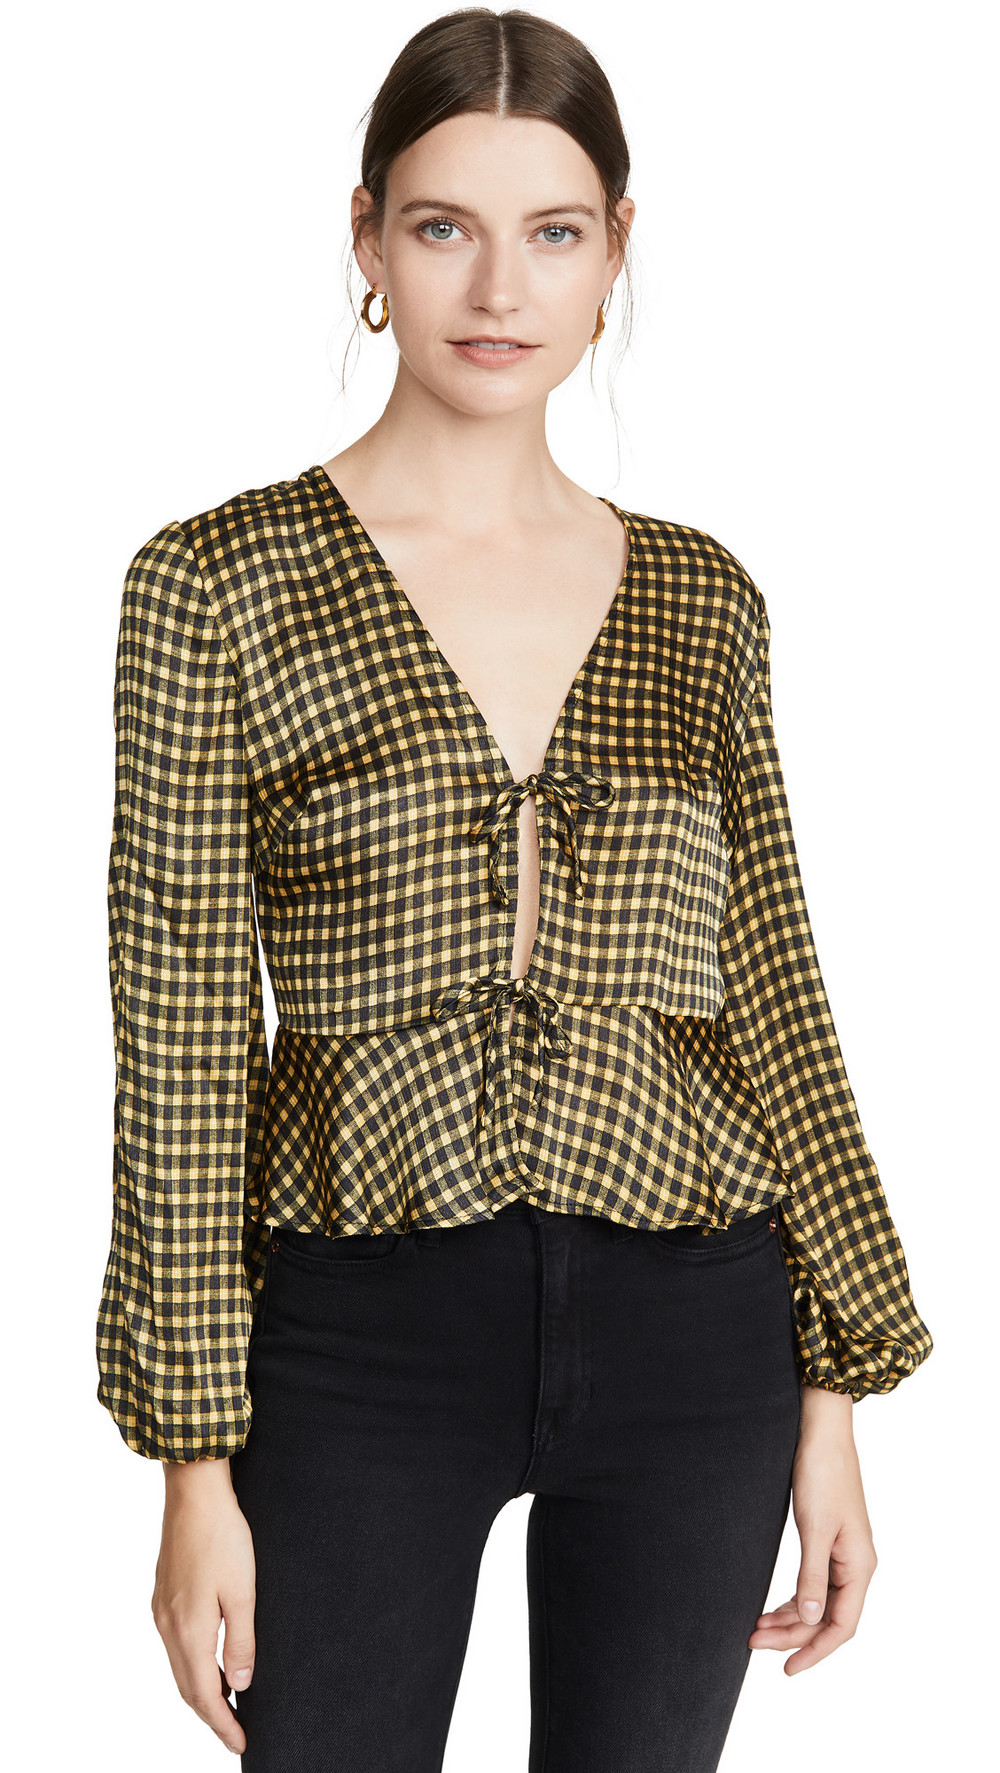 The Fifth Label Goldie Check Top in black / yellow